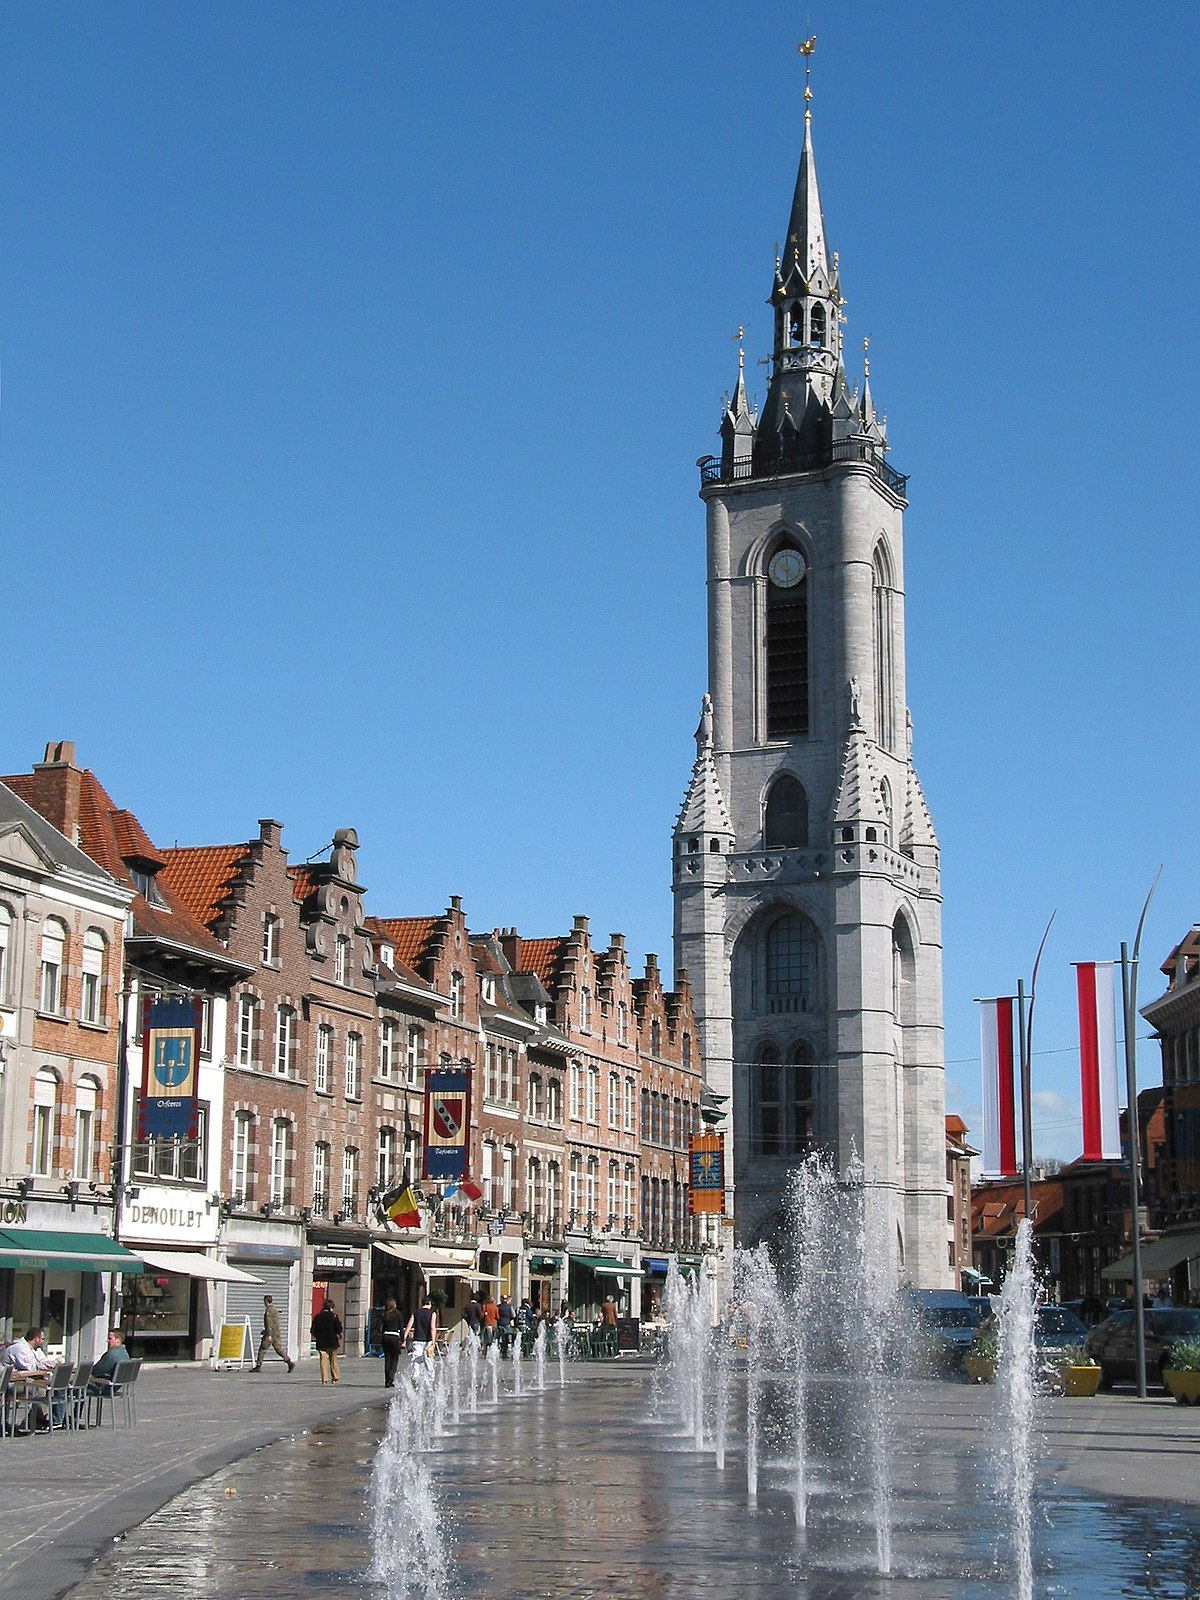 belfry of tournai wikipedia. Black Bedroom Furniture Sets. Home Design Ideas